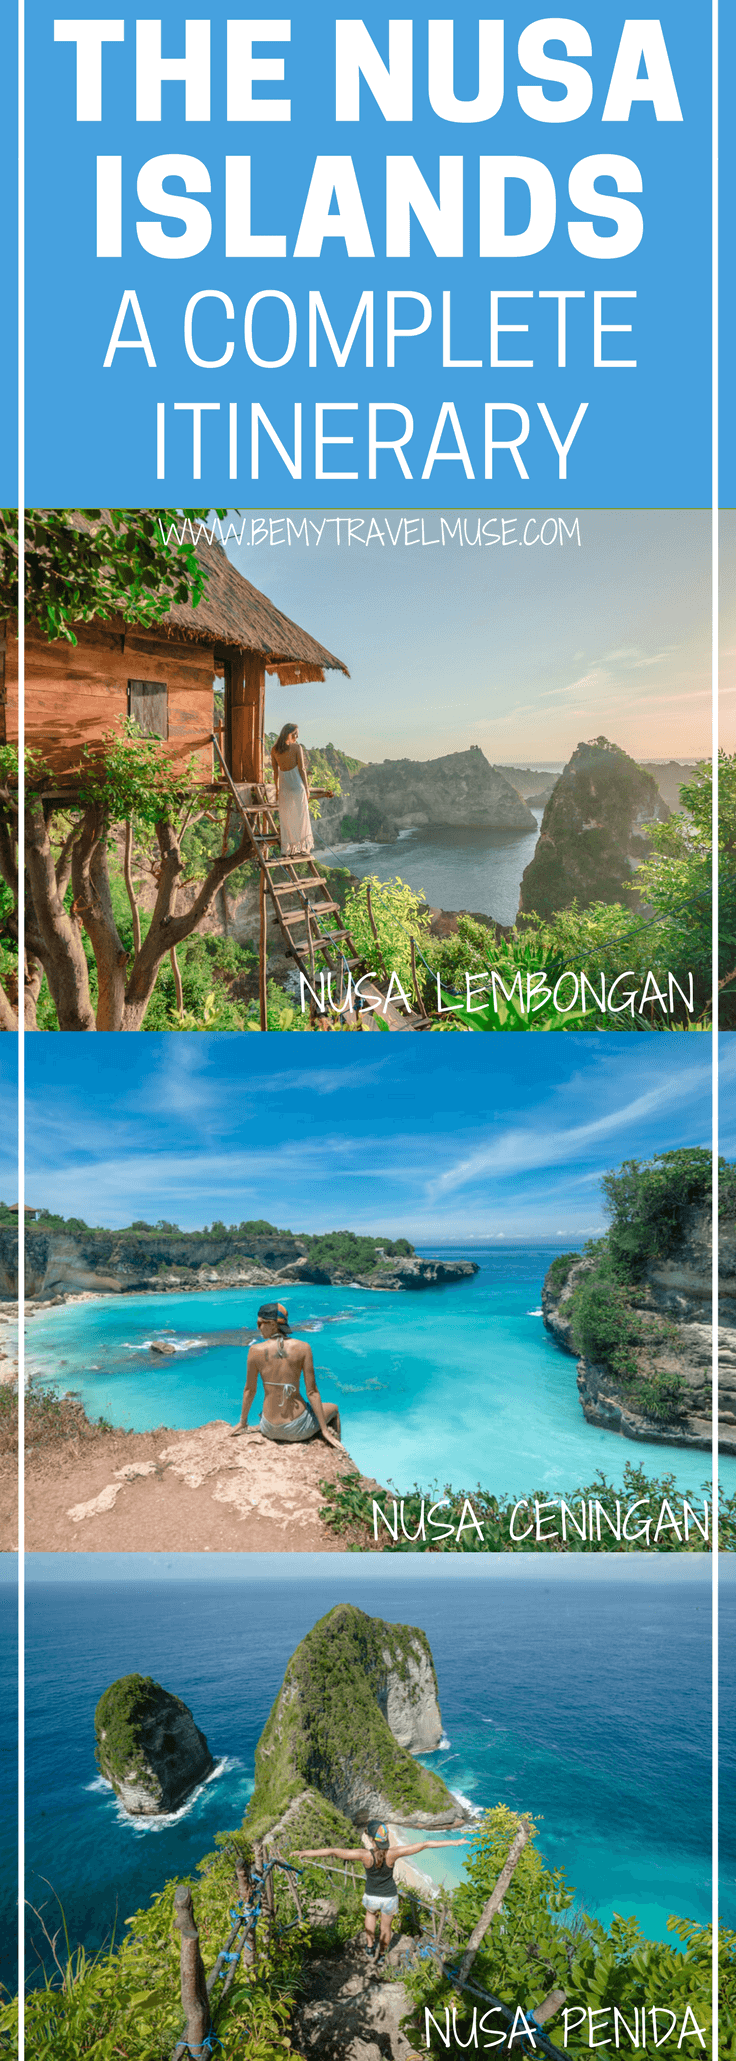 The ultimate guide to your trip in the Nusa Islands, Bali, Indonesia! A full itinerary that will help plan your trip, with all the best spots to see & go, accommodation and transportation tips! Be My Travel Muse | Nusa Lembongan | Nusa Penida | Nusa Ceningan | Blue Lagoon | Devil's Tear | Angel's Bilabong | Dream Beach | Kelingking Viewpoint | Bali travel tips | Indonesia travel tips